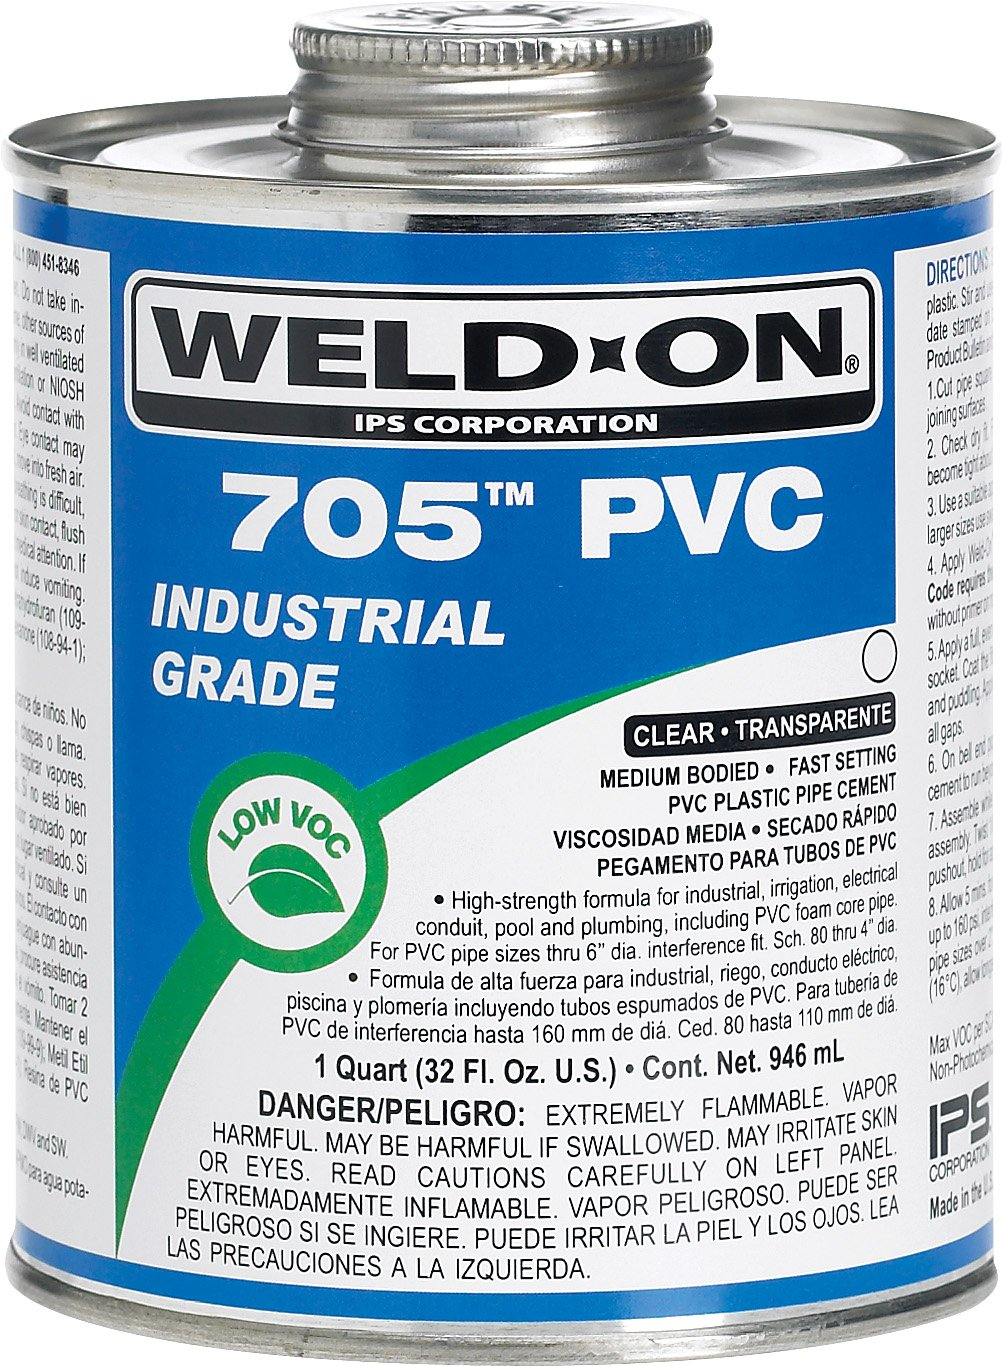 Weldon 705 10089 Industrial Grade Plumbing Cement Medium-Bodied Fast-Setting, 1 Quart, Clear